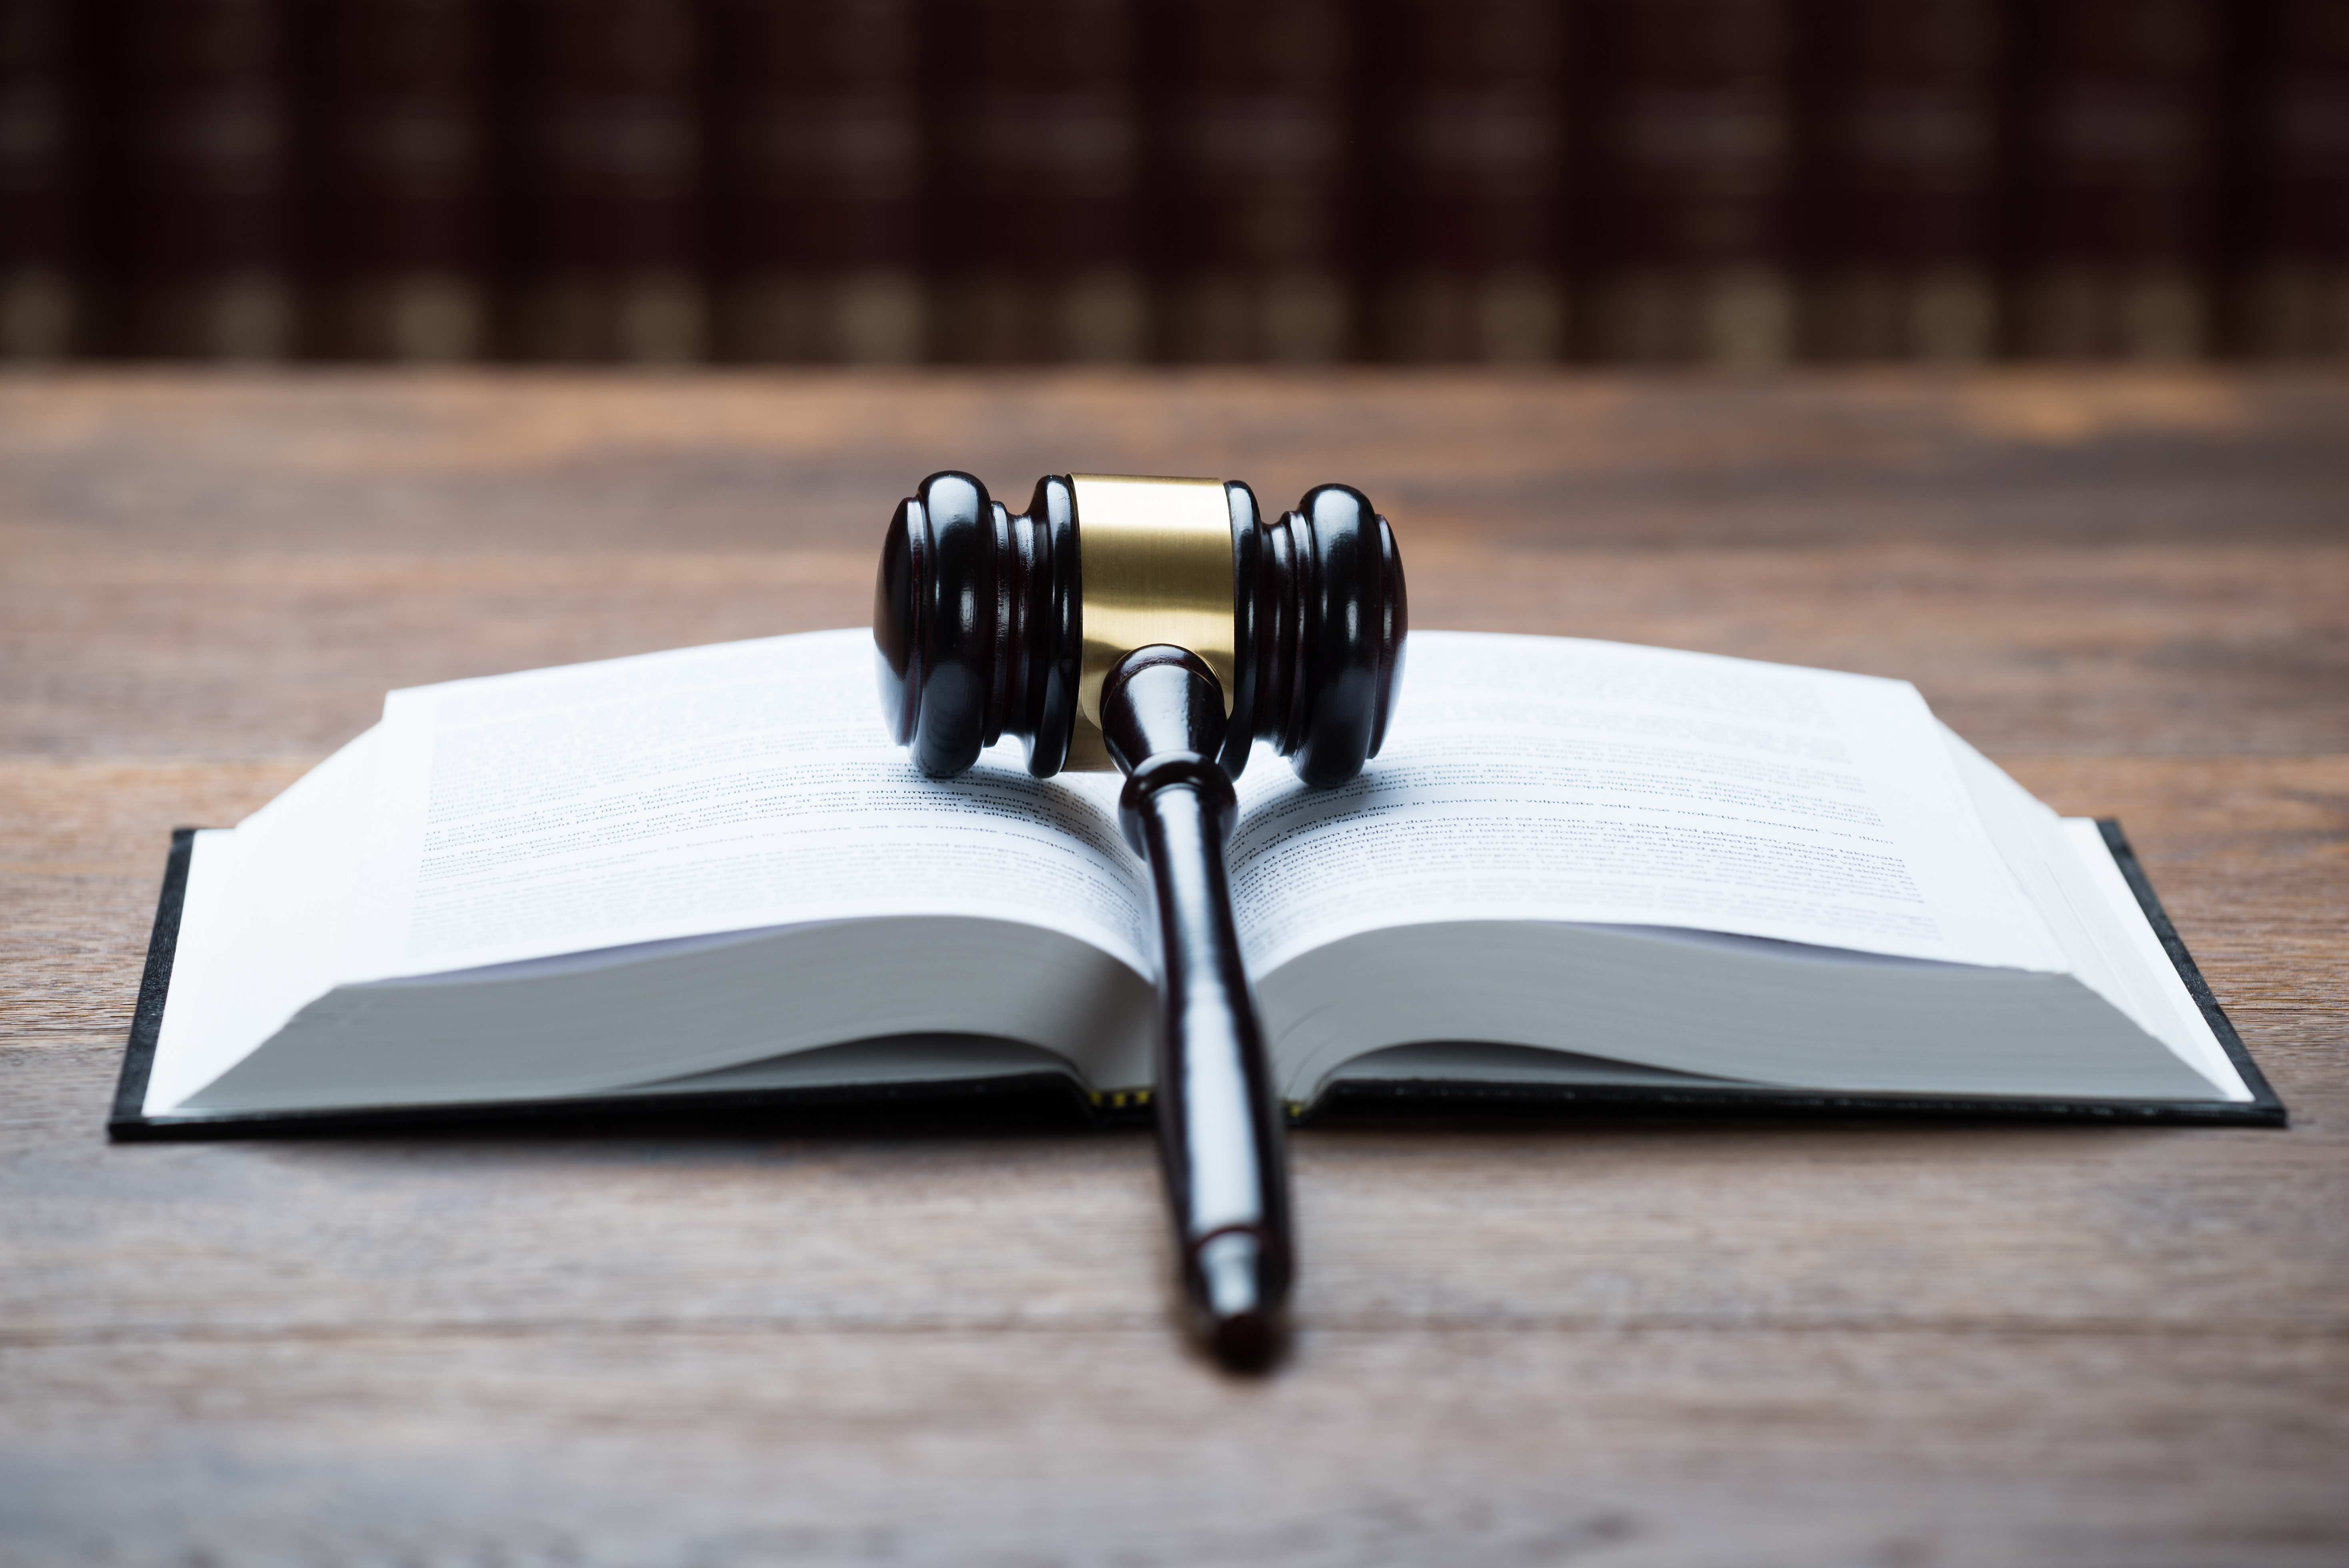 Mallet On Open Legal Book In Courtroom